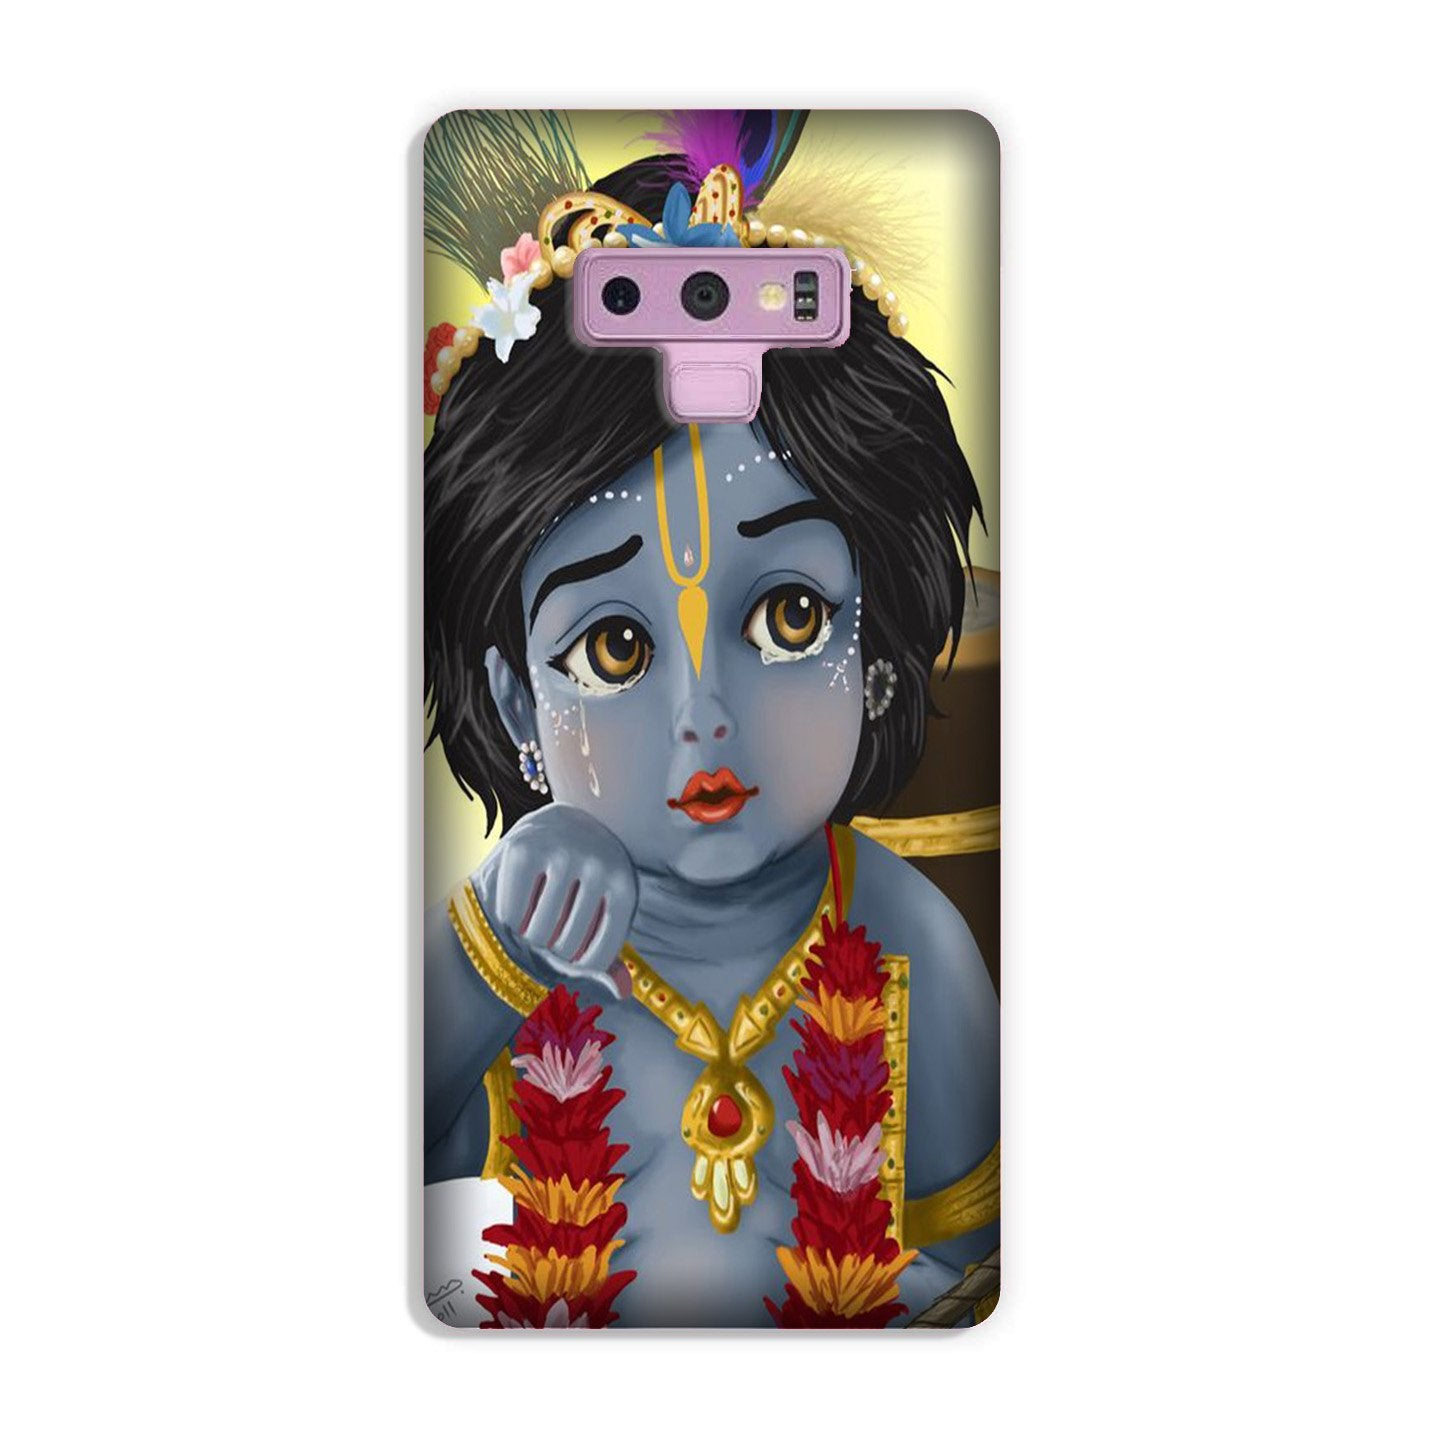 Bal Gopal Case for Galaxy Note 9